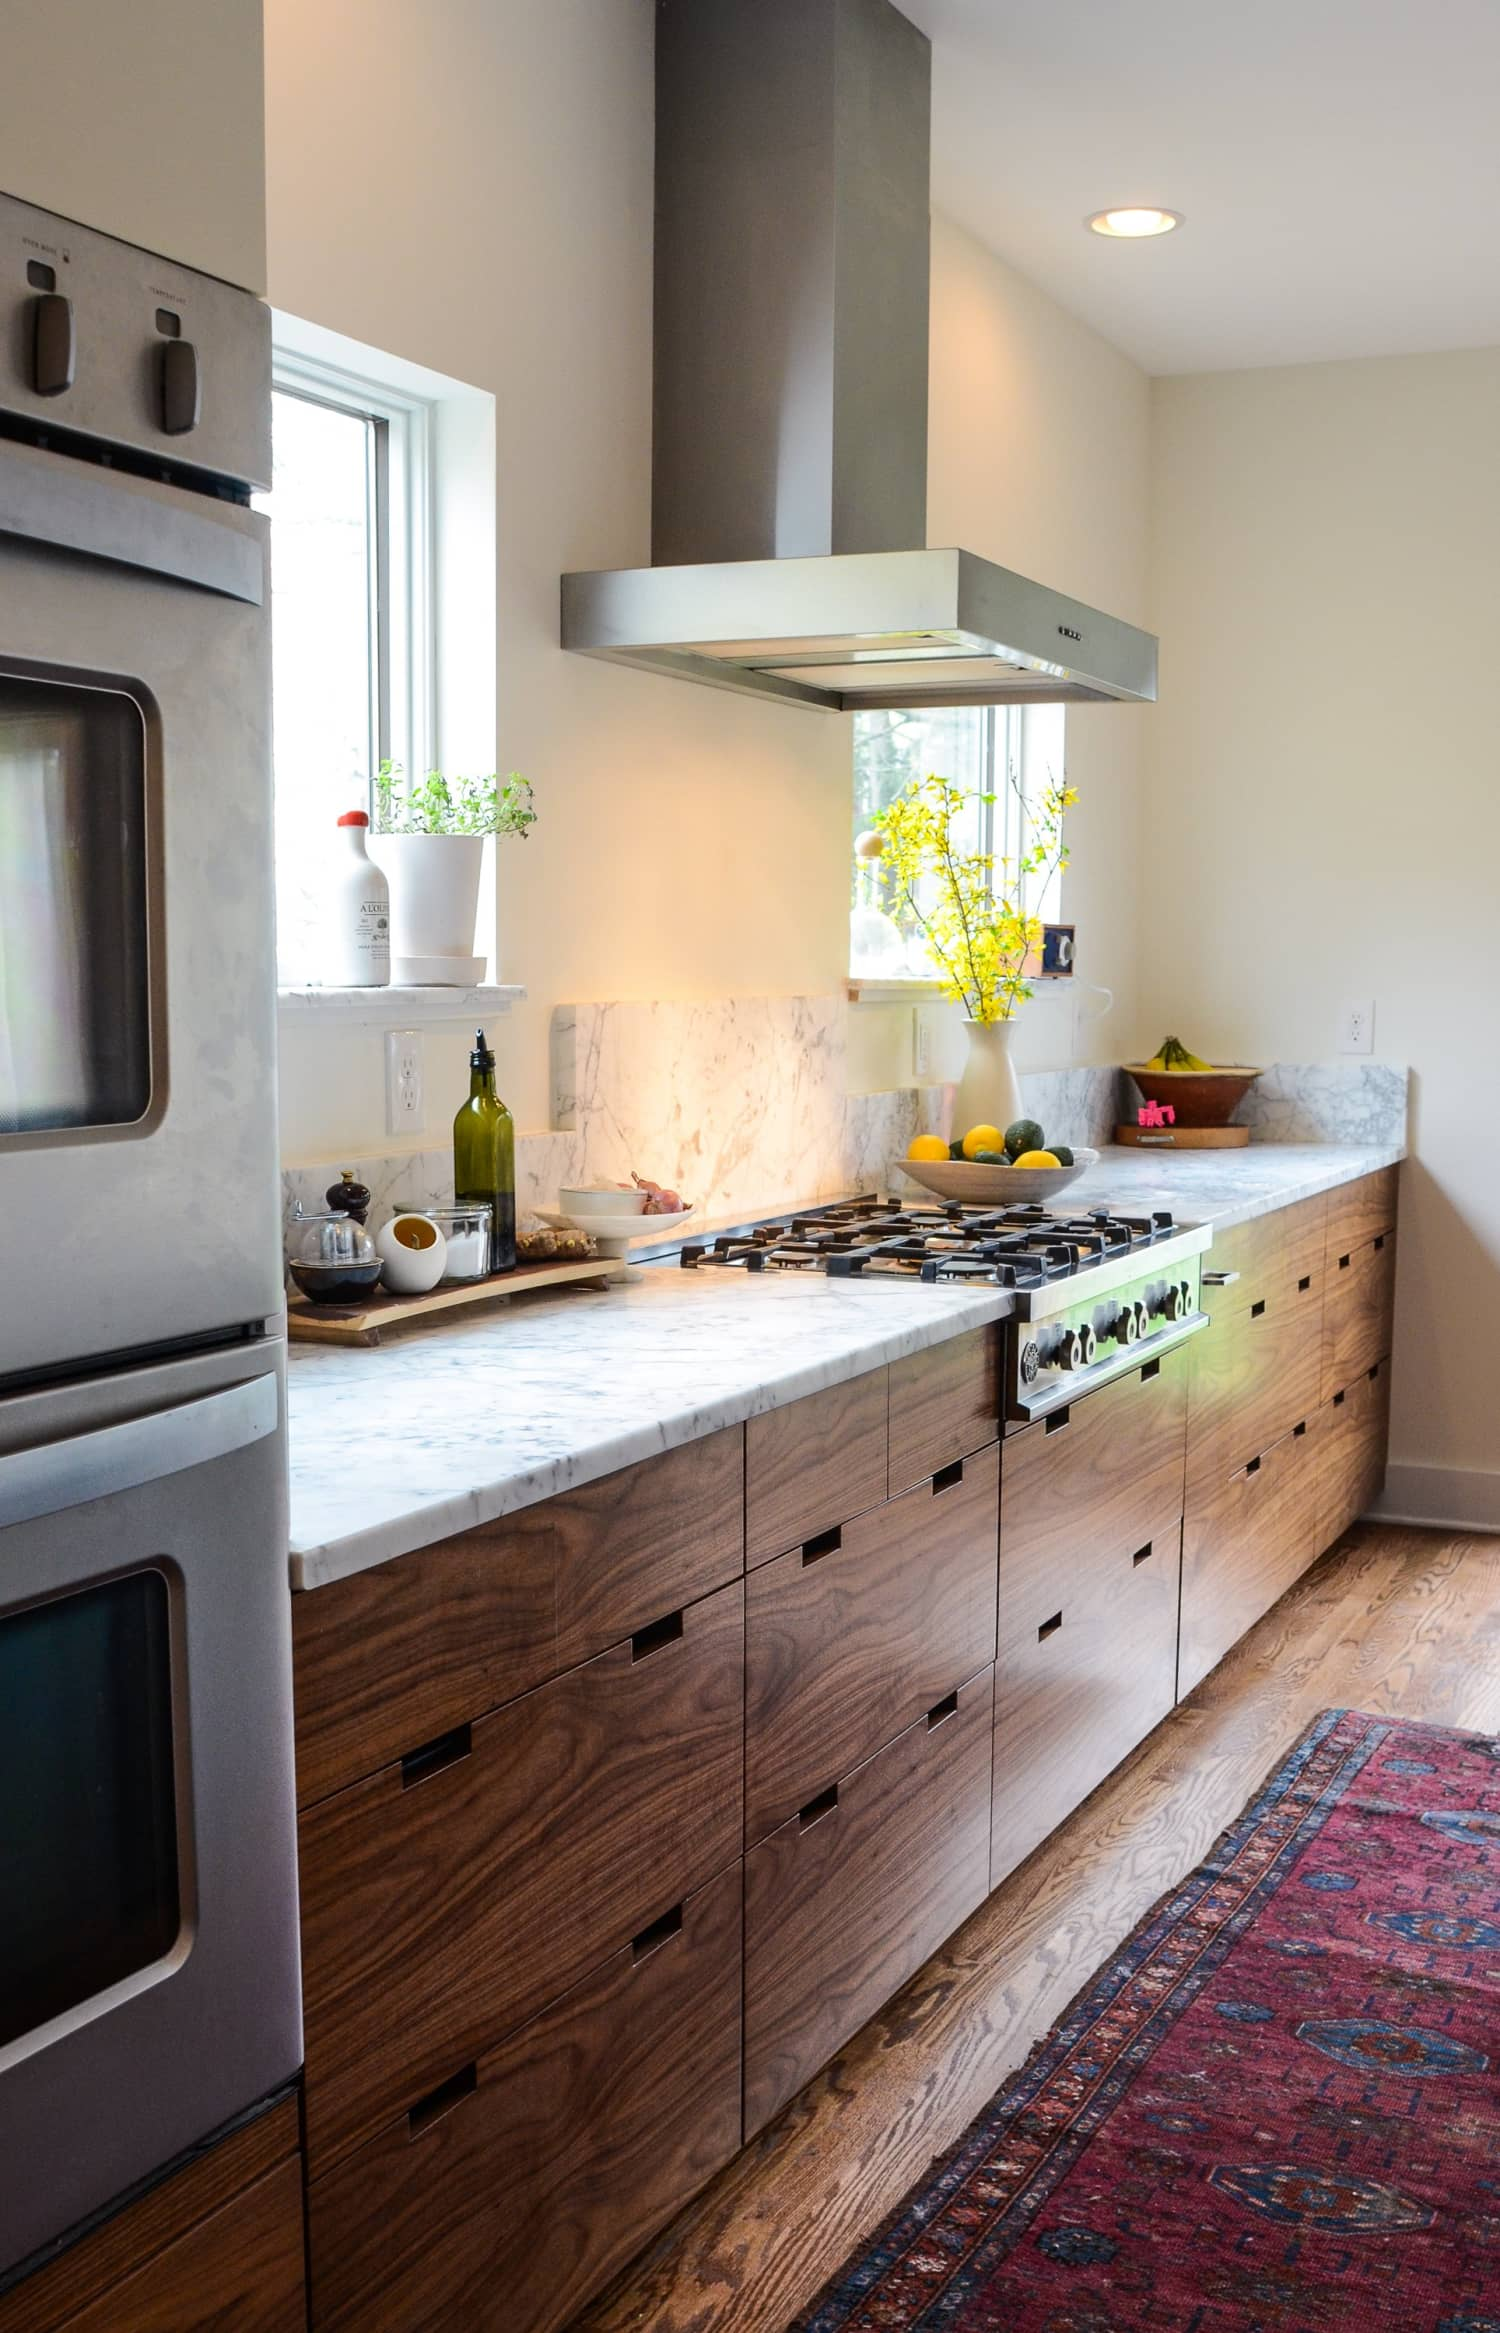 My Experience of Living With Marble Countertops: One Year Later